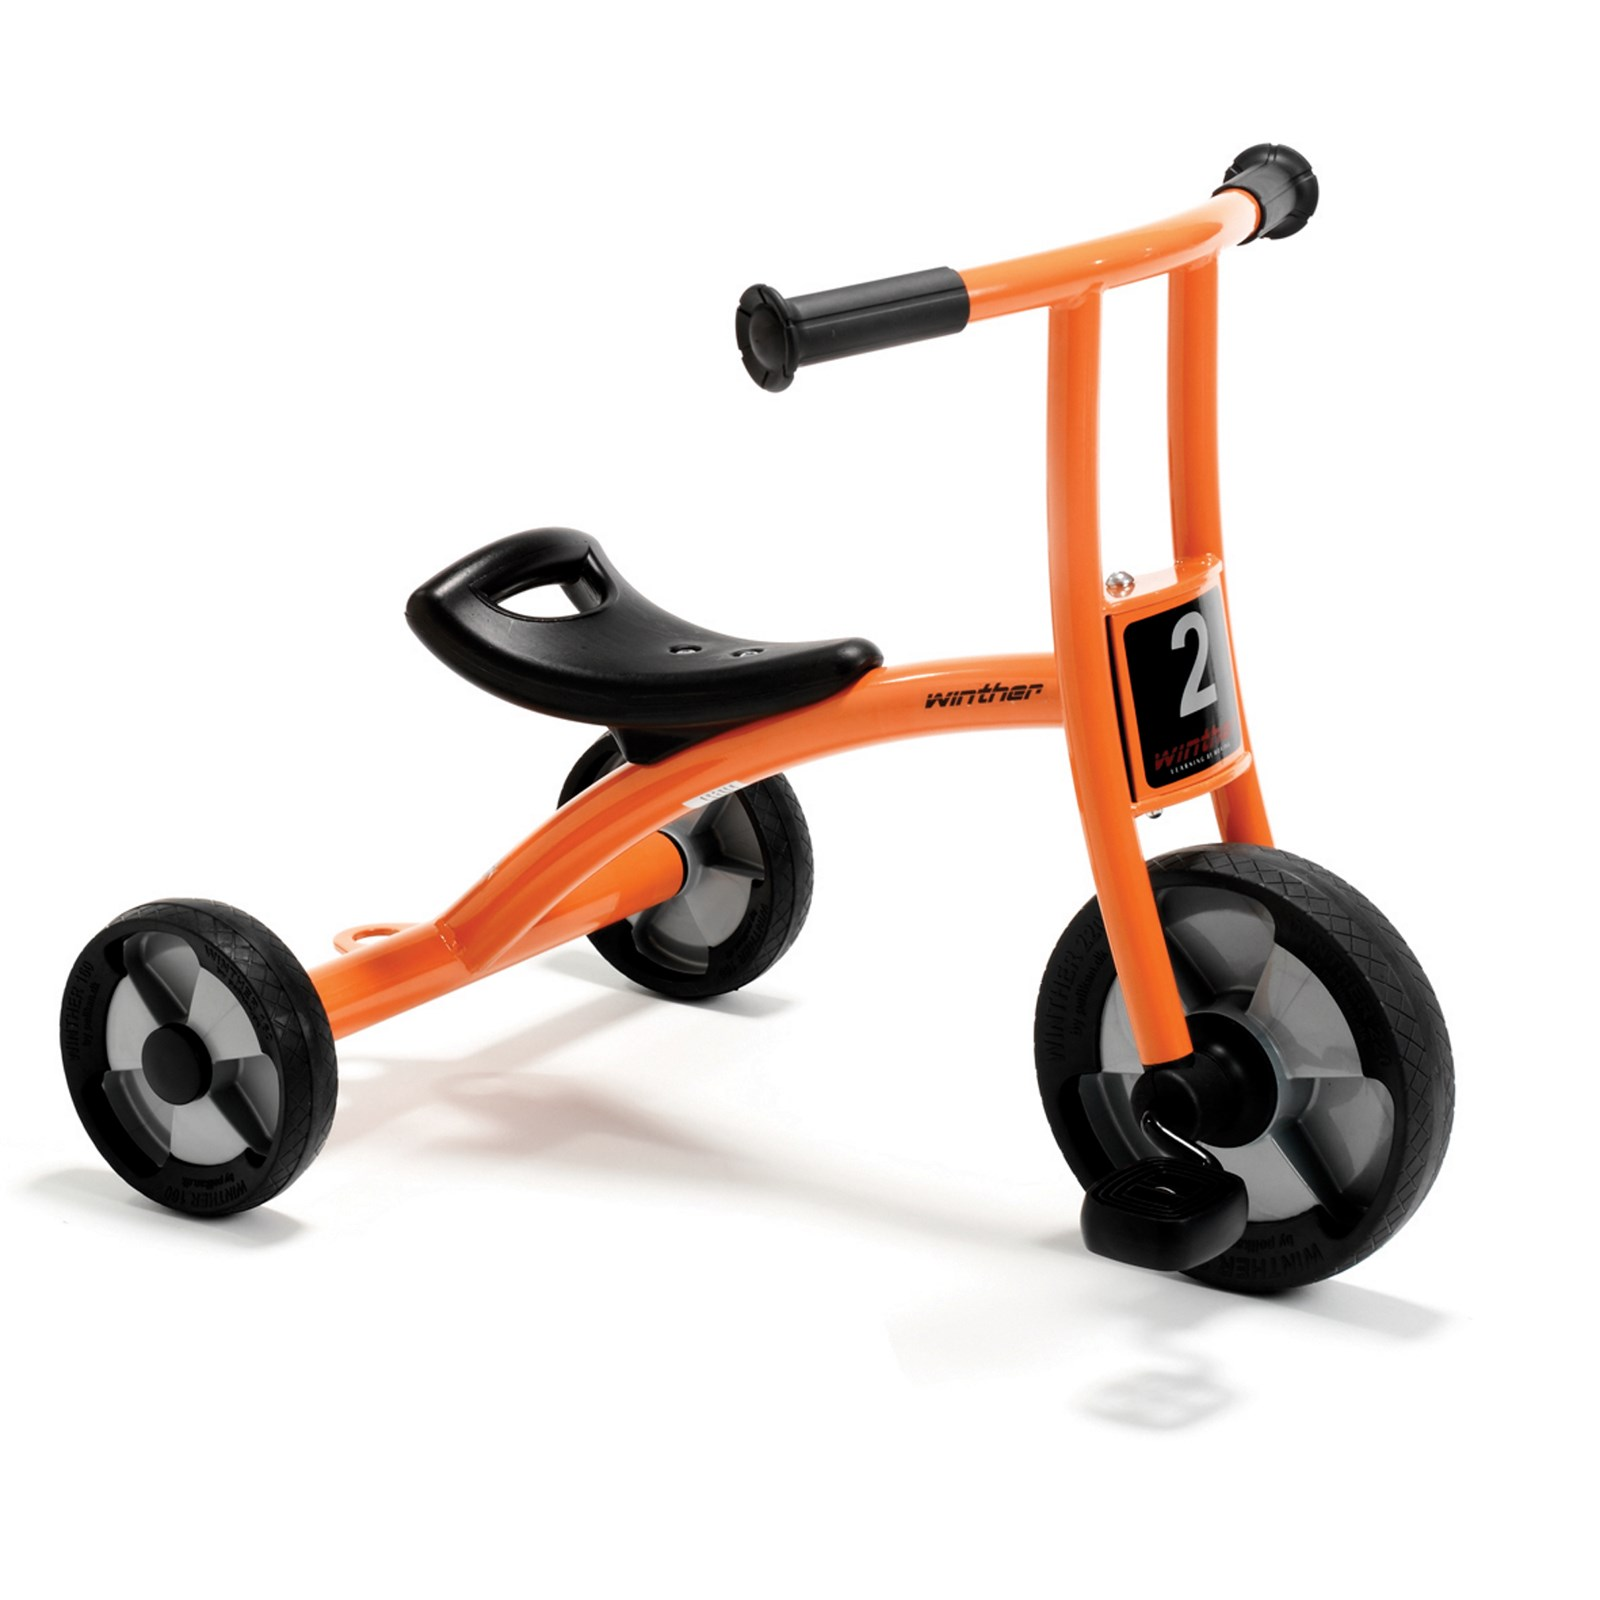 Circleline Tricycle – Small